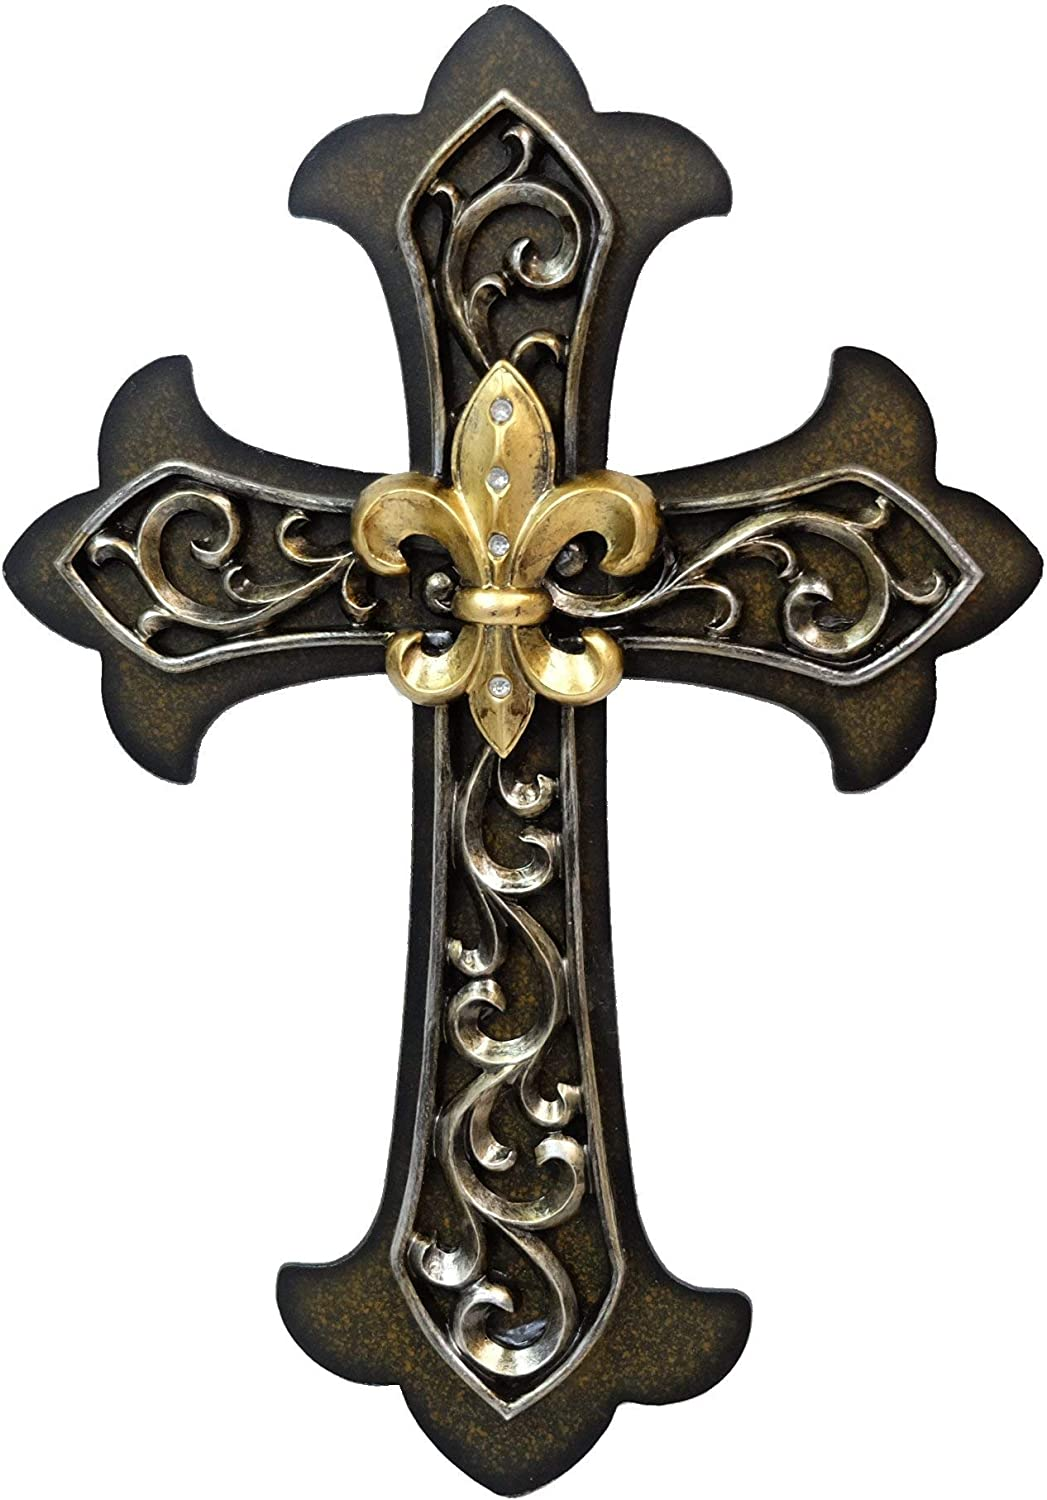 BestGiftEver Fleur De Lis Wall Cross with Gold FDL and Dark Bronze Scrolls Wall Art Plaque Home decoration 12.5""